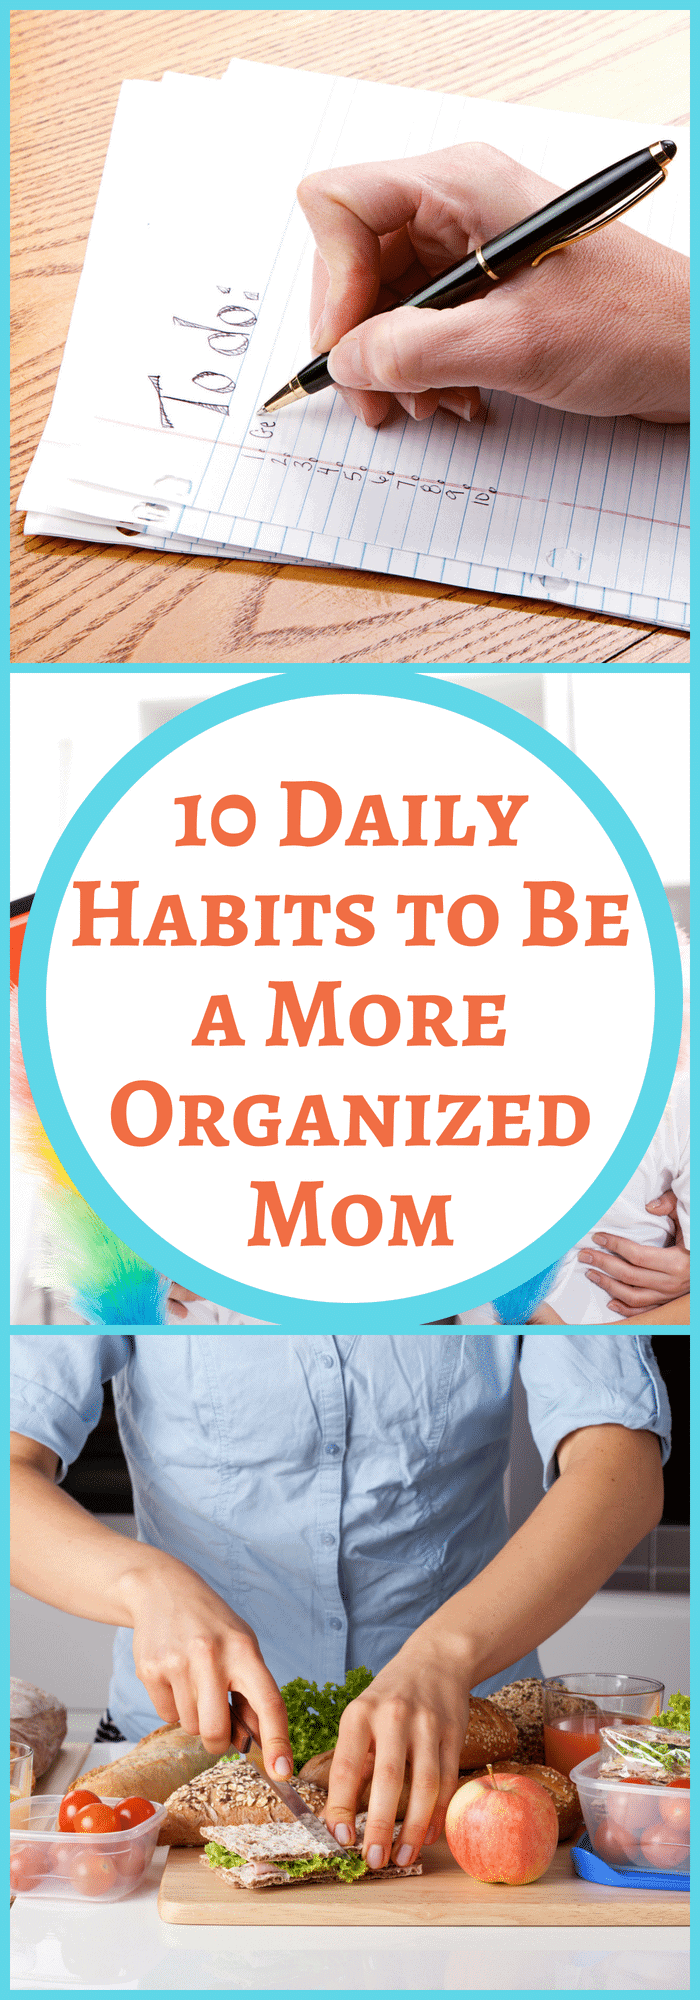 Organization--10 Daily Habits to Be a More Organized Mom--The Organized Mom